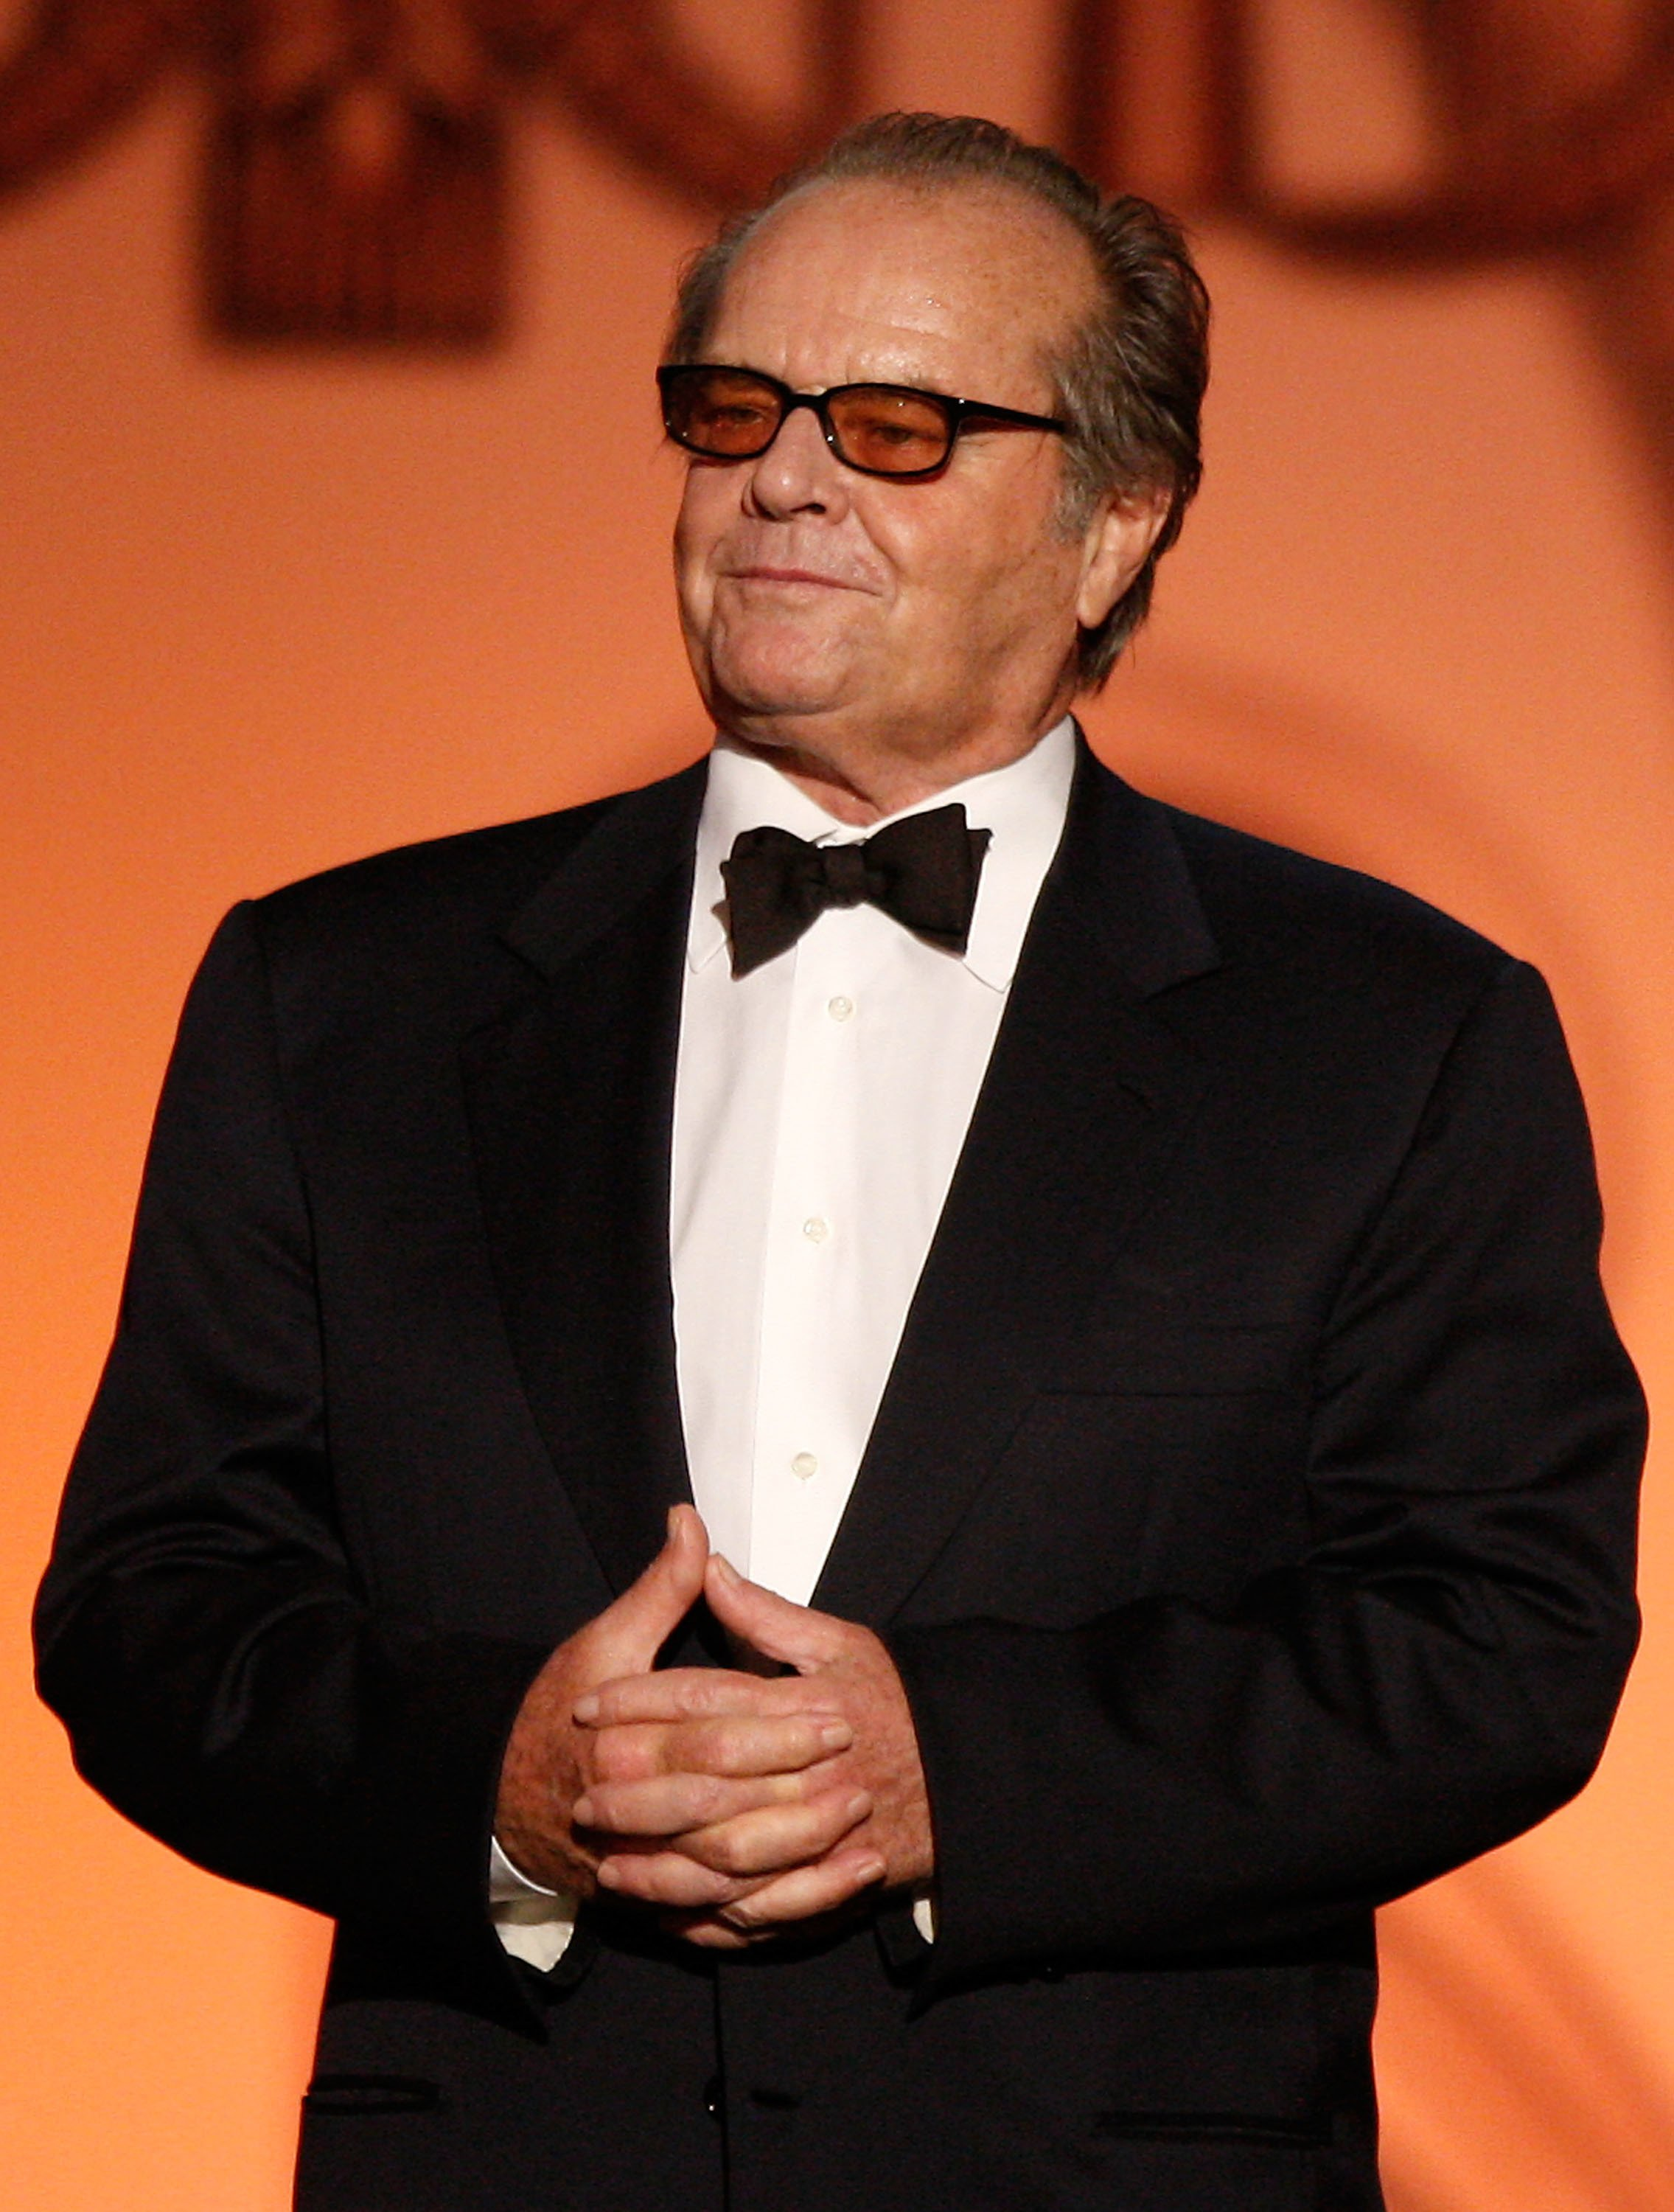 Actor Jack Nicholson speaks onstage during the AFI Life Achievement Award: A Tribute to Michael Douglas at Sony Pictures Studios on June 11, 2009 | Photo: Getty Images